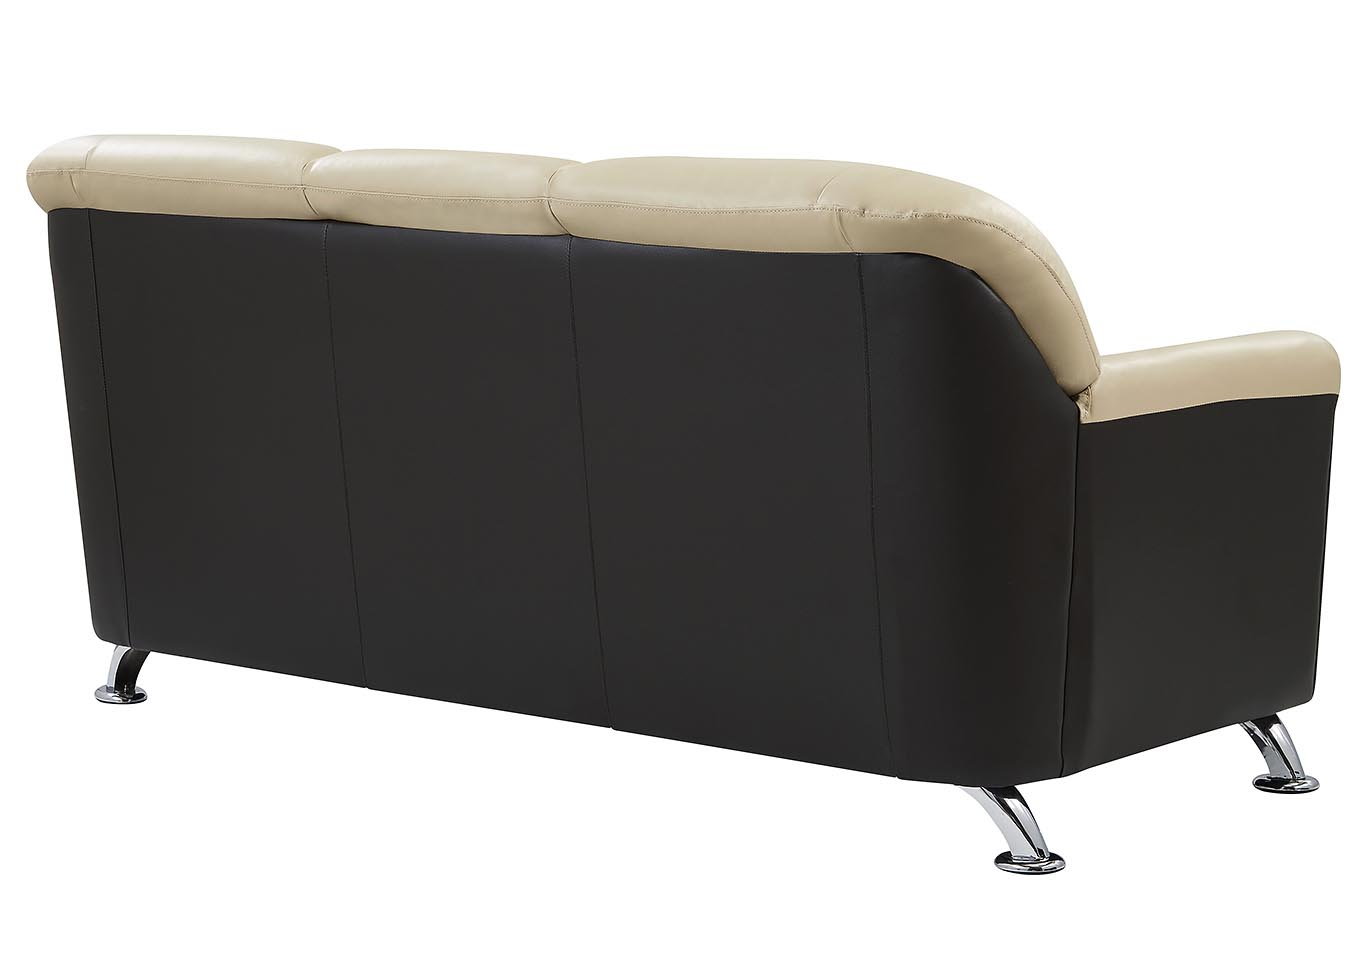 Cappuccino/Chocolate Sofa,Global Furniture USA